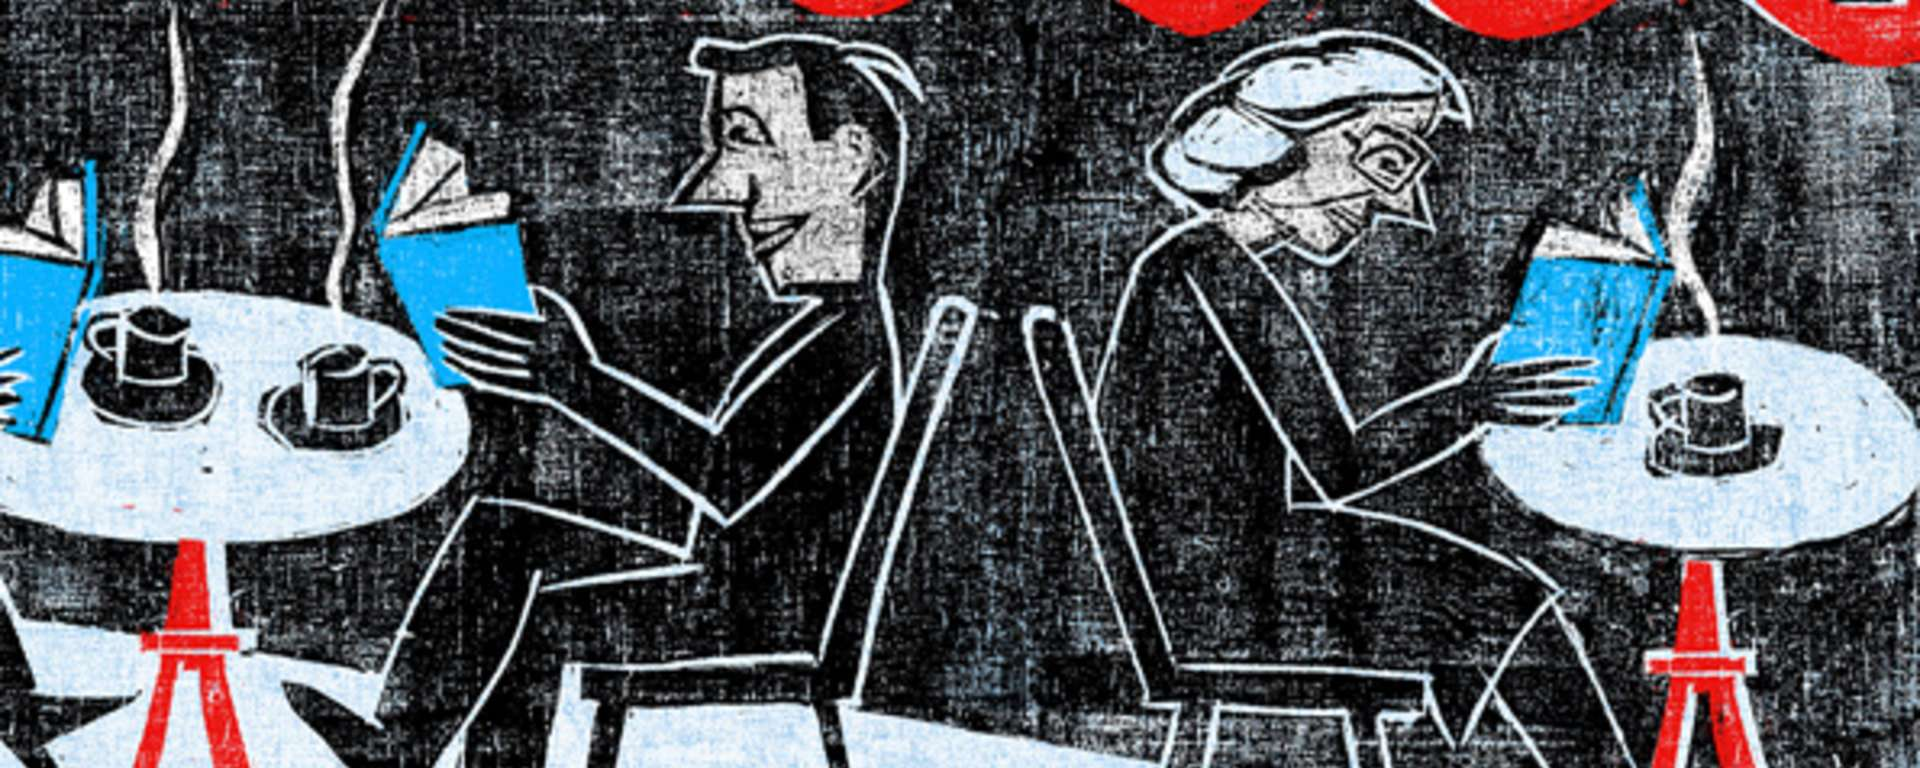 The Economist - Books of the year 2015